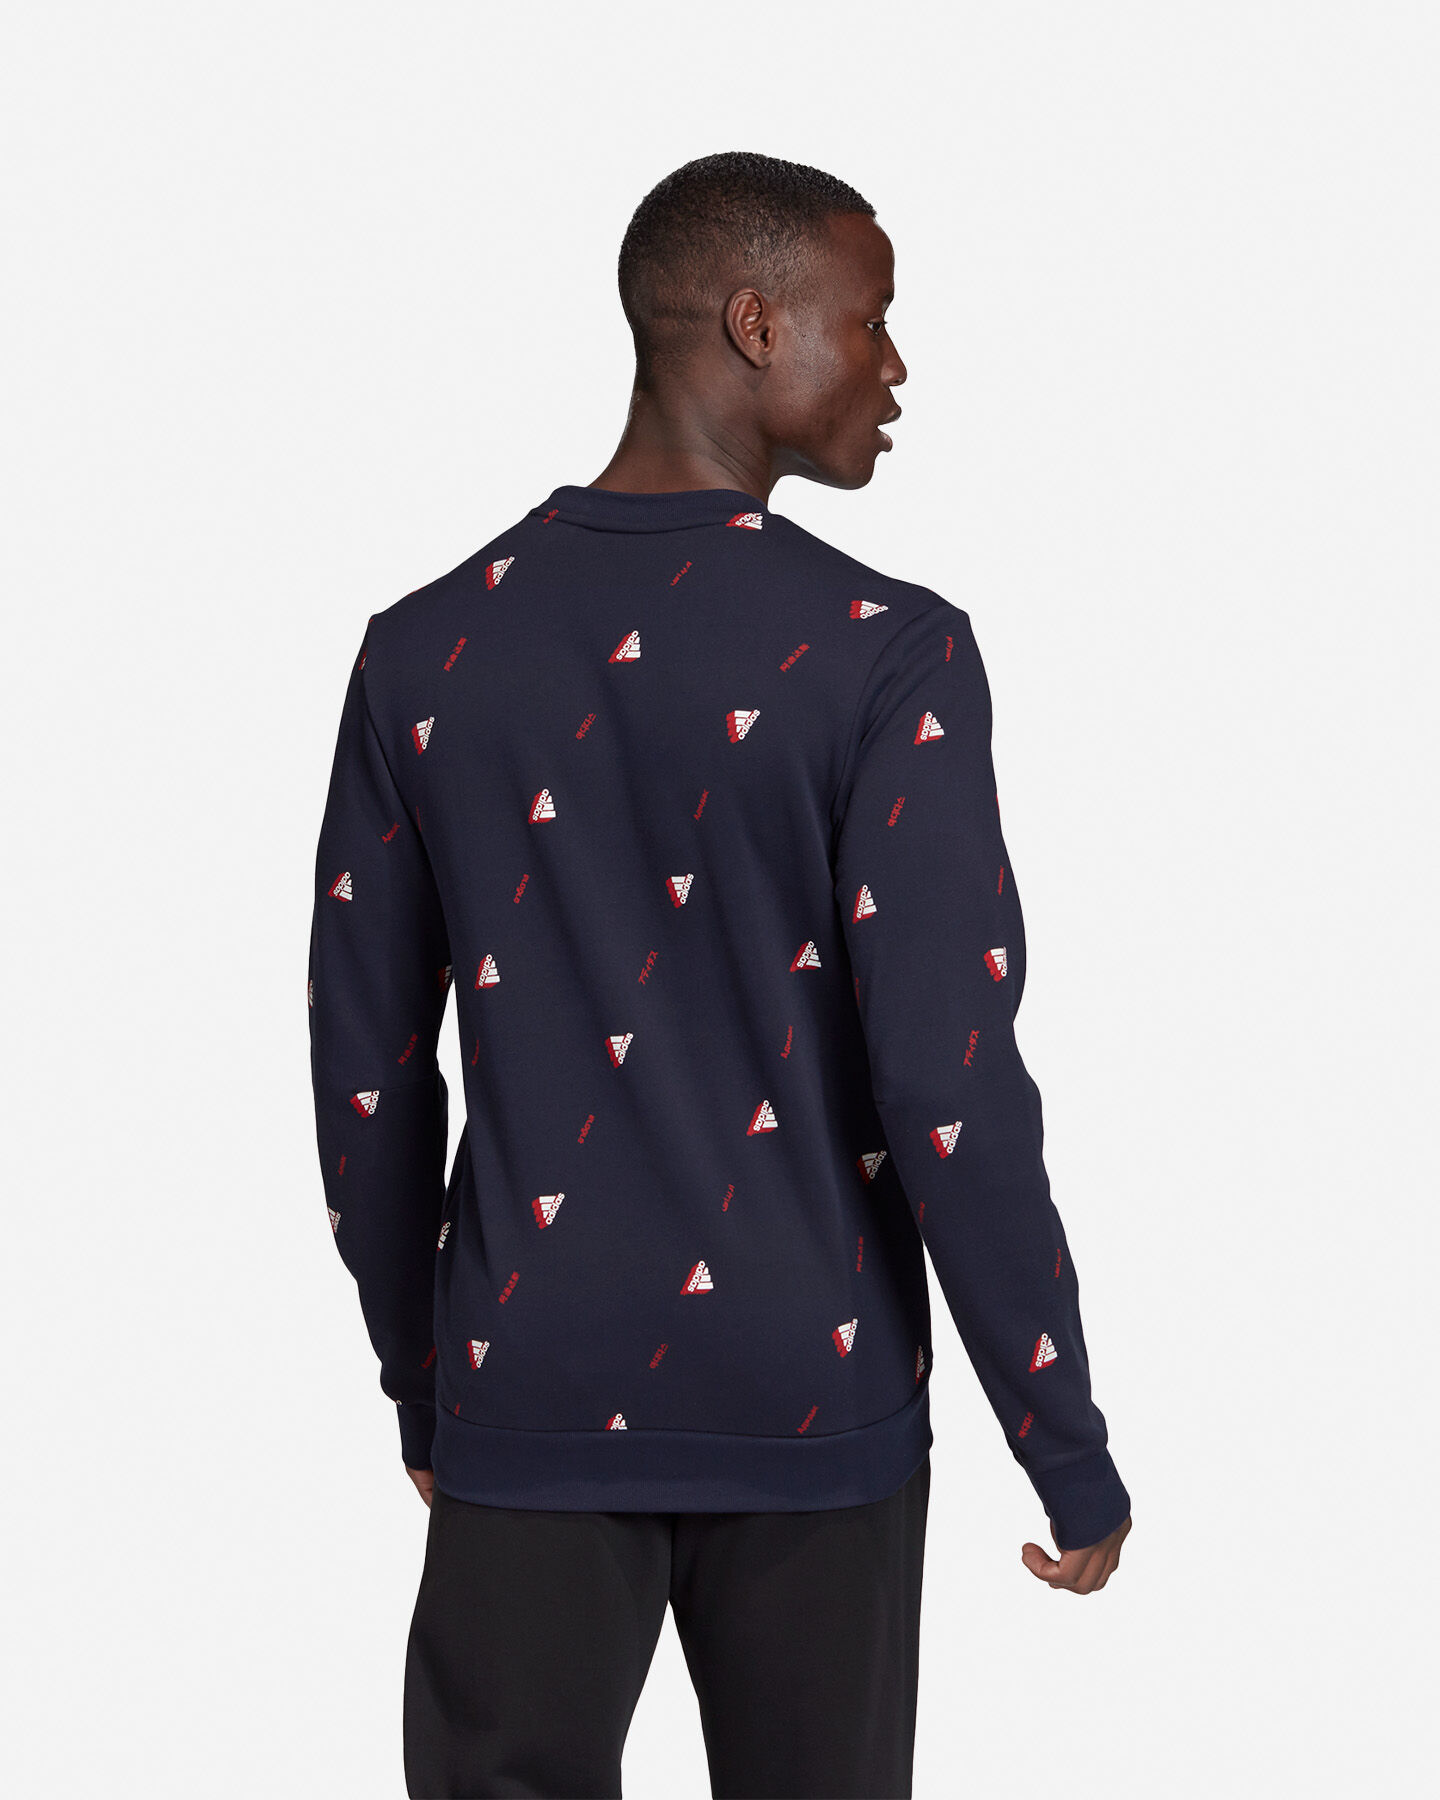 Felpa ADIDAS MUST HAVES GRAPHIC CREW M S5153856 scatto 4